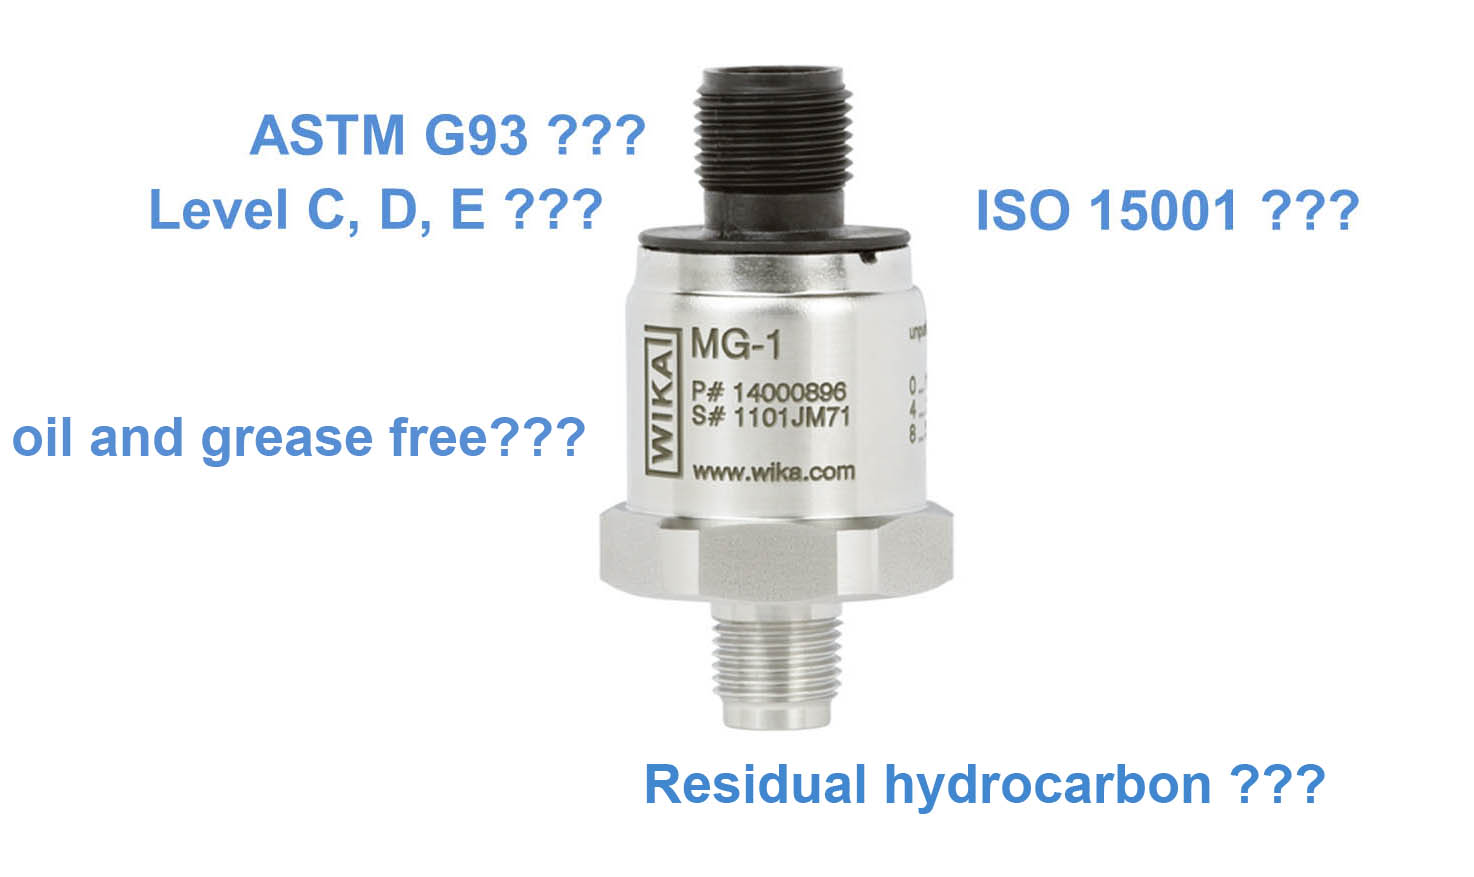 Use Of Pressure Sensors In Medical Oxygen Applications - What Should Be Considered